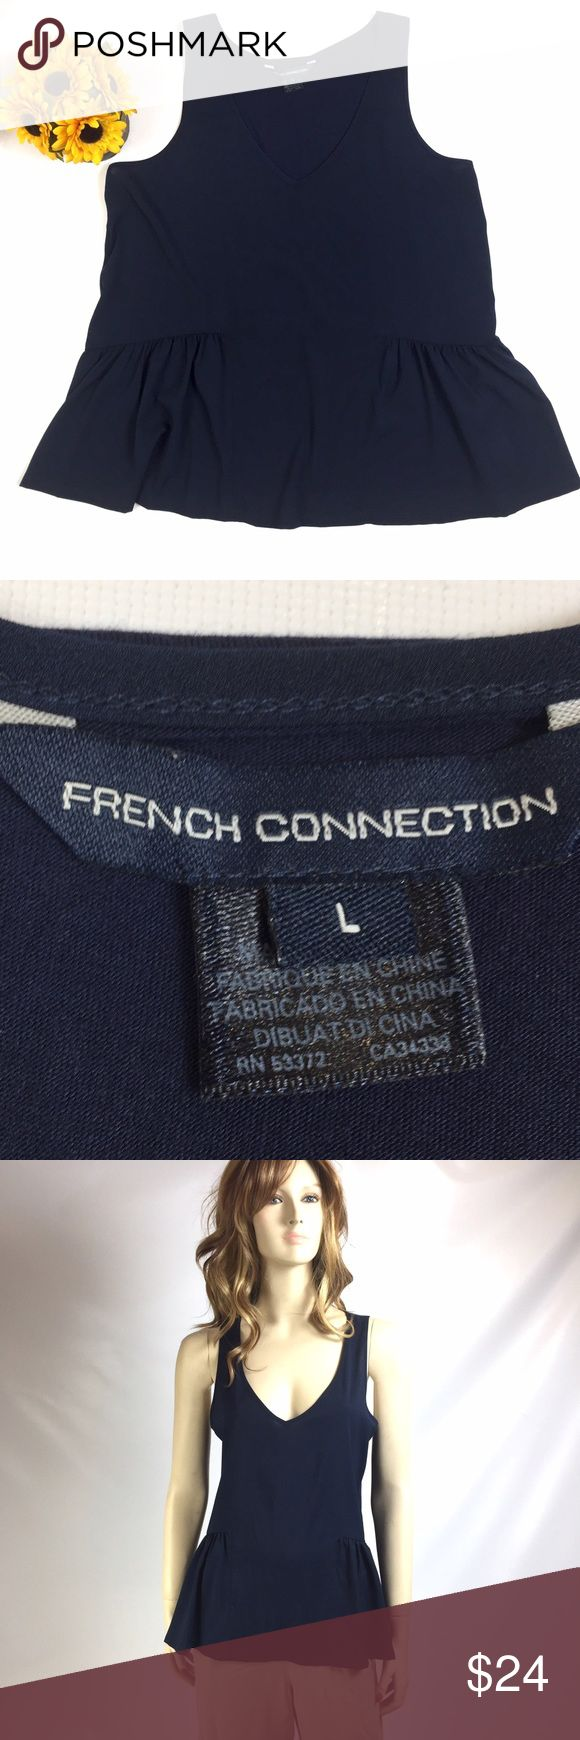 "FRENCH CONNECTION NAVY V-NECK TOP LARGE FRENCH CONNECTION NAVY SLEEVELESS TOP WITH RUFFLE LIKE BOTTOM IN FRONT  36 1/2"" BUST, 25"" LENGTH  FEMININE AND GRACEFUL TOP THAT CAN BE PAIRED WITH PANTS, SHORTS OR SKIRT  COLD WASH INSIDE OUT  SMOKE-FREE-HOME French Connection Tops"